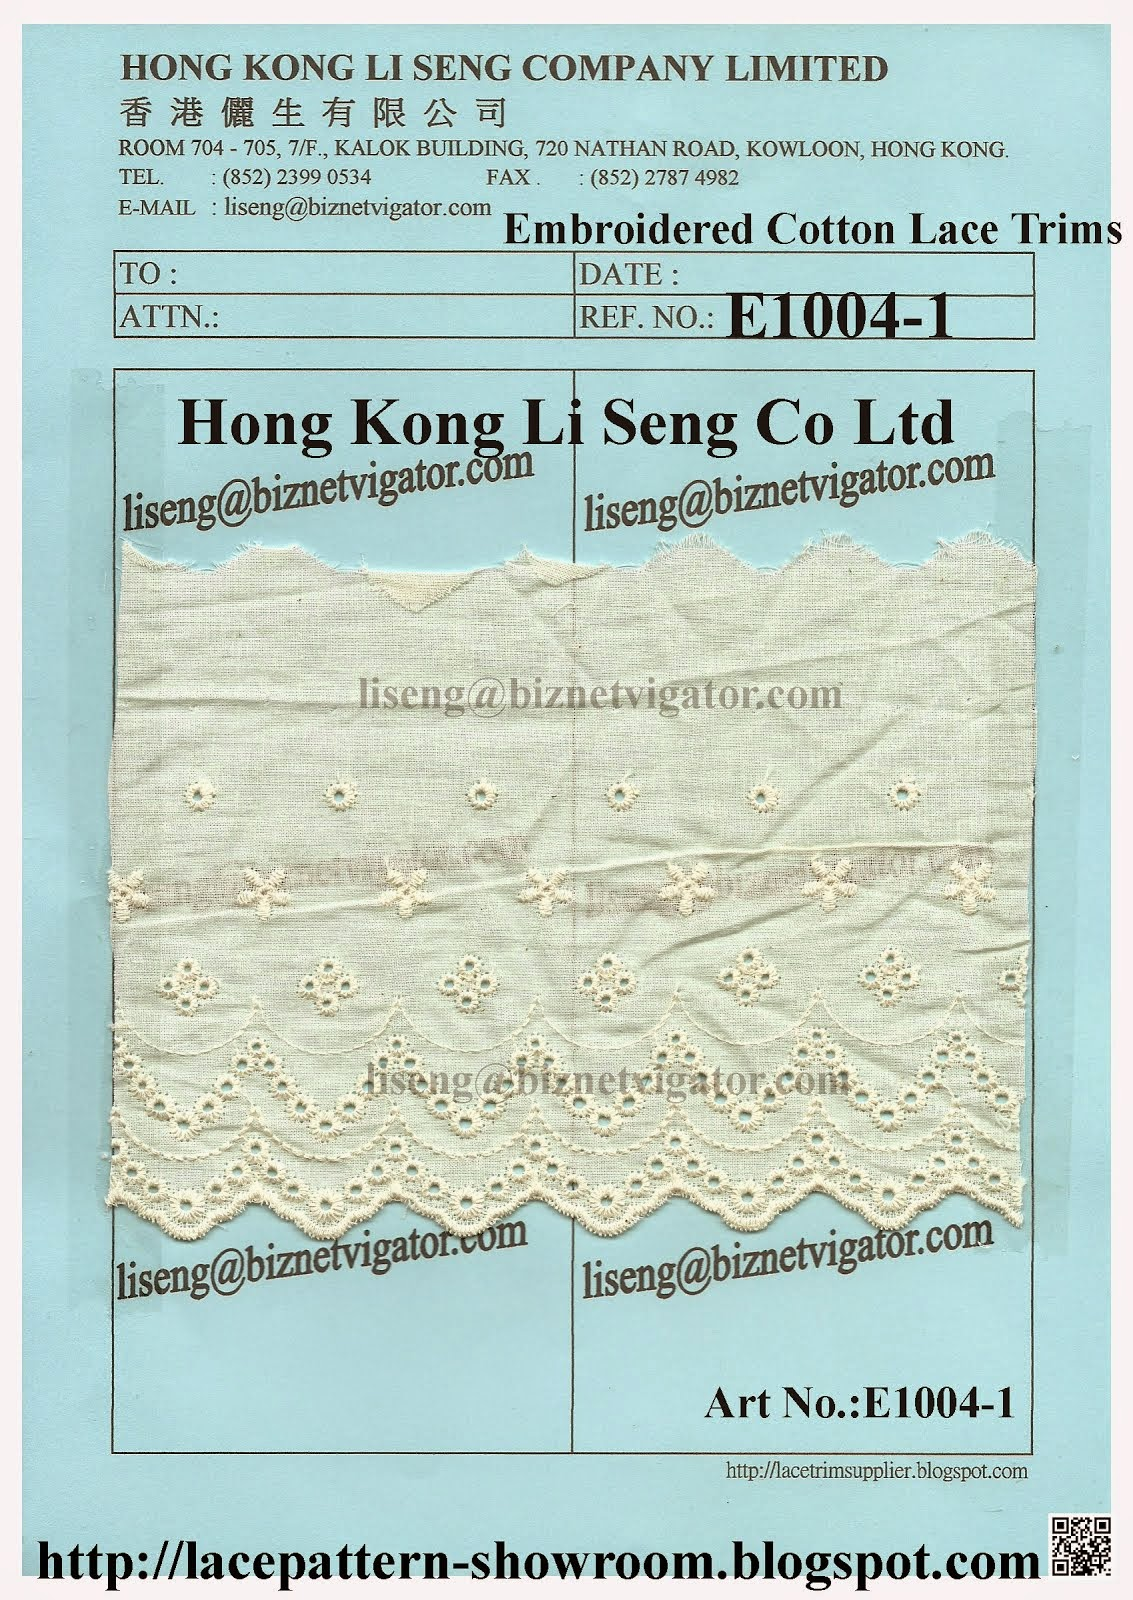 Simple Embroidered Cotton Lace Trims Pattern - Hong Kong Li Seng Co Ltd